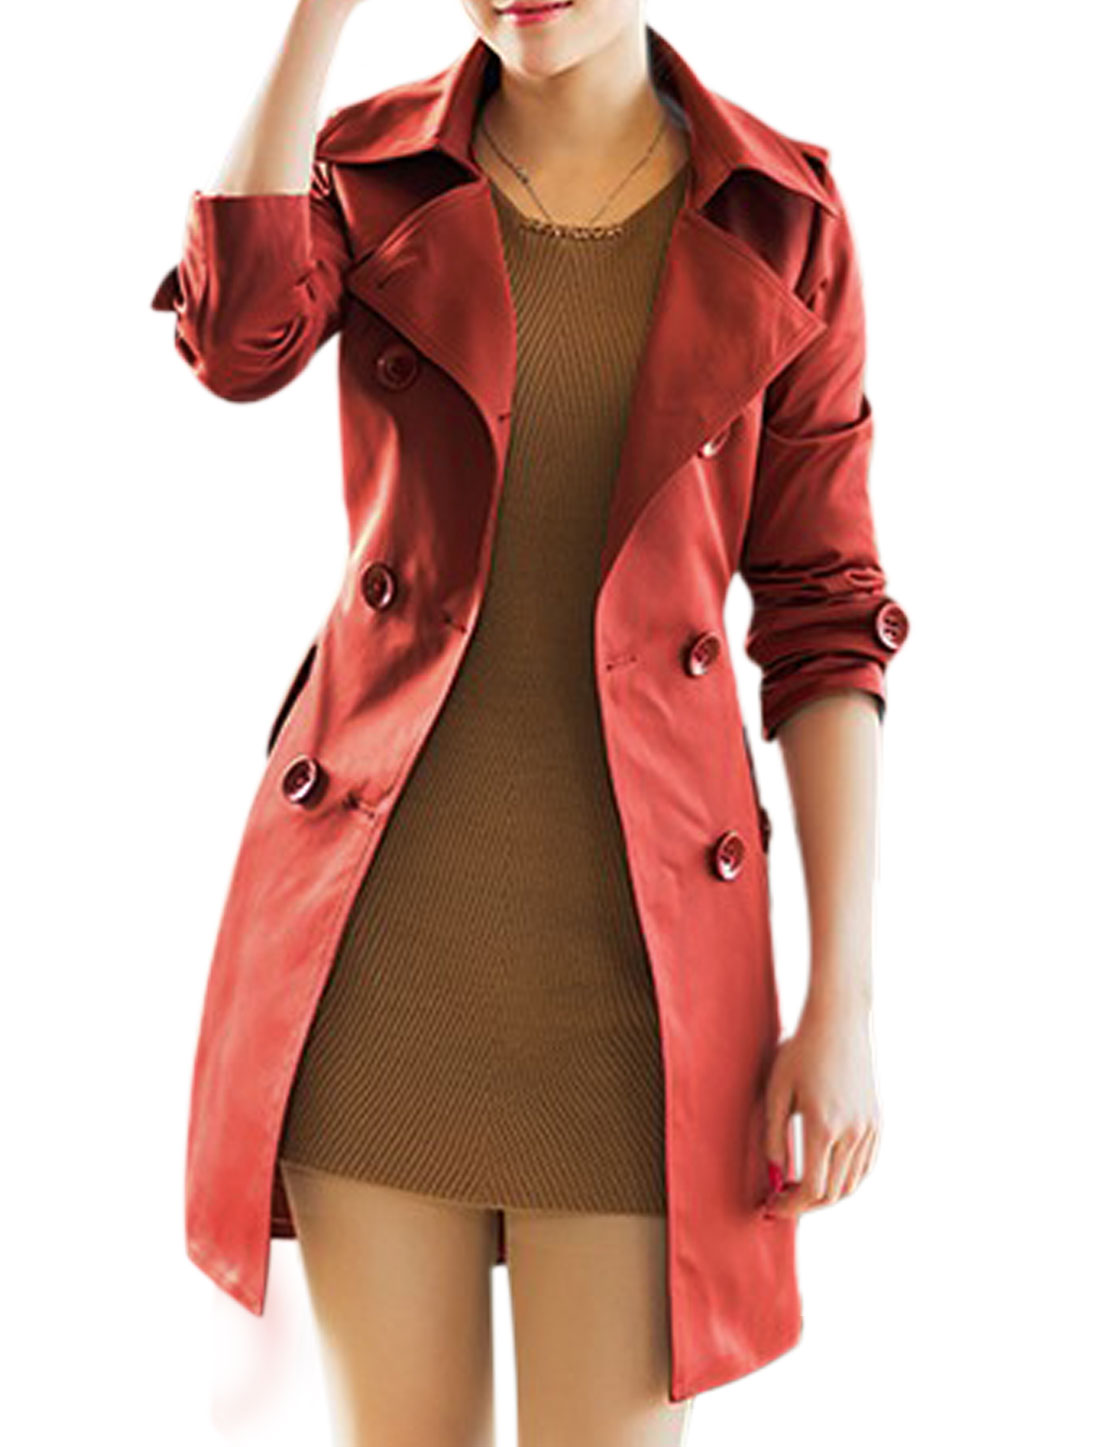 Women Single Breasted Slant Pockets Trench Coat w Waist Strap Burgundy S